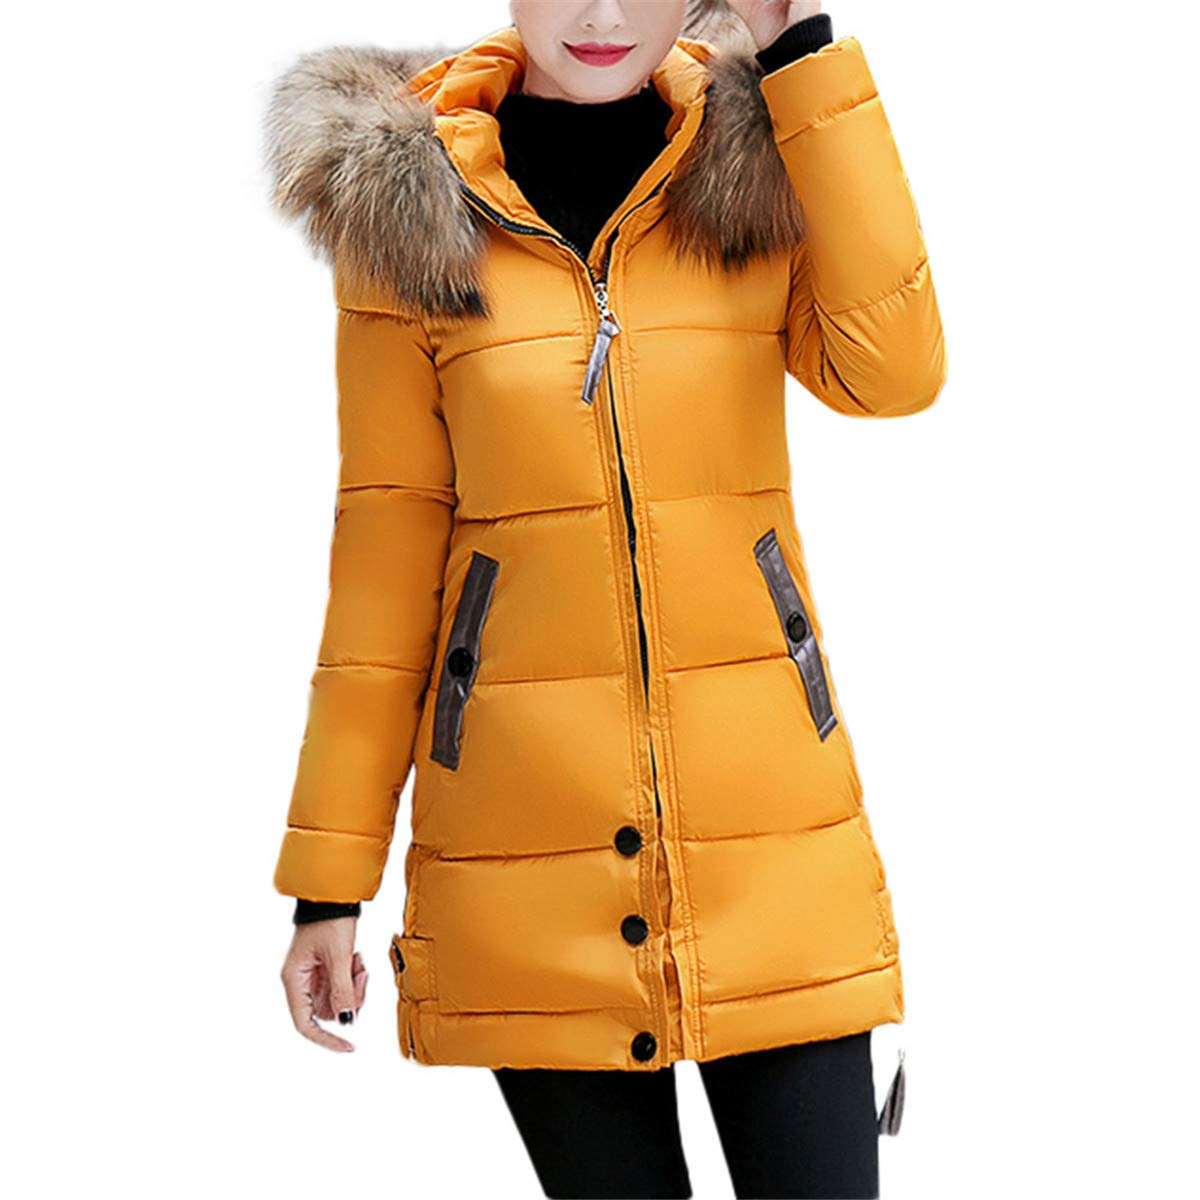 Thenxin Womens Winter Thicken Hooded Parka Puffer Coats Slim Fit Mid Length Outwear(Yellow,XL) by Thenxin